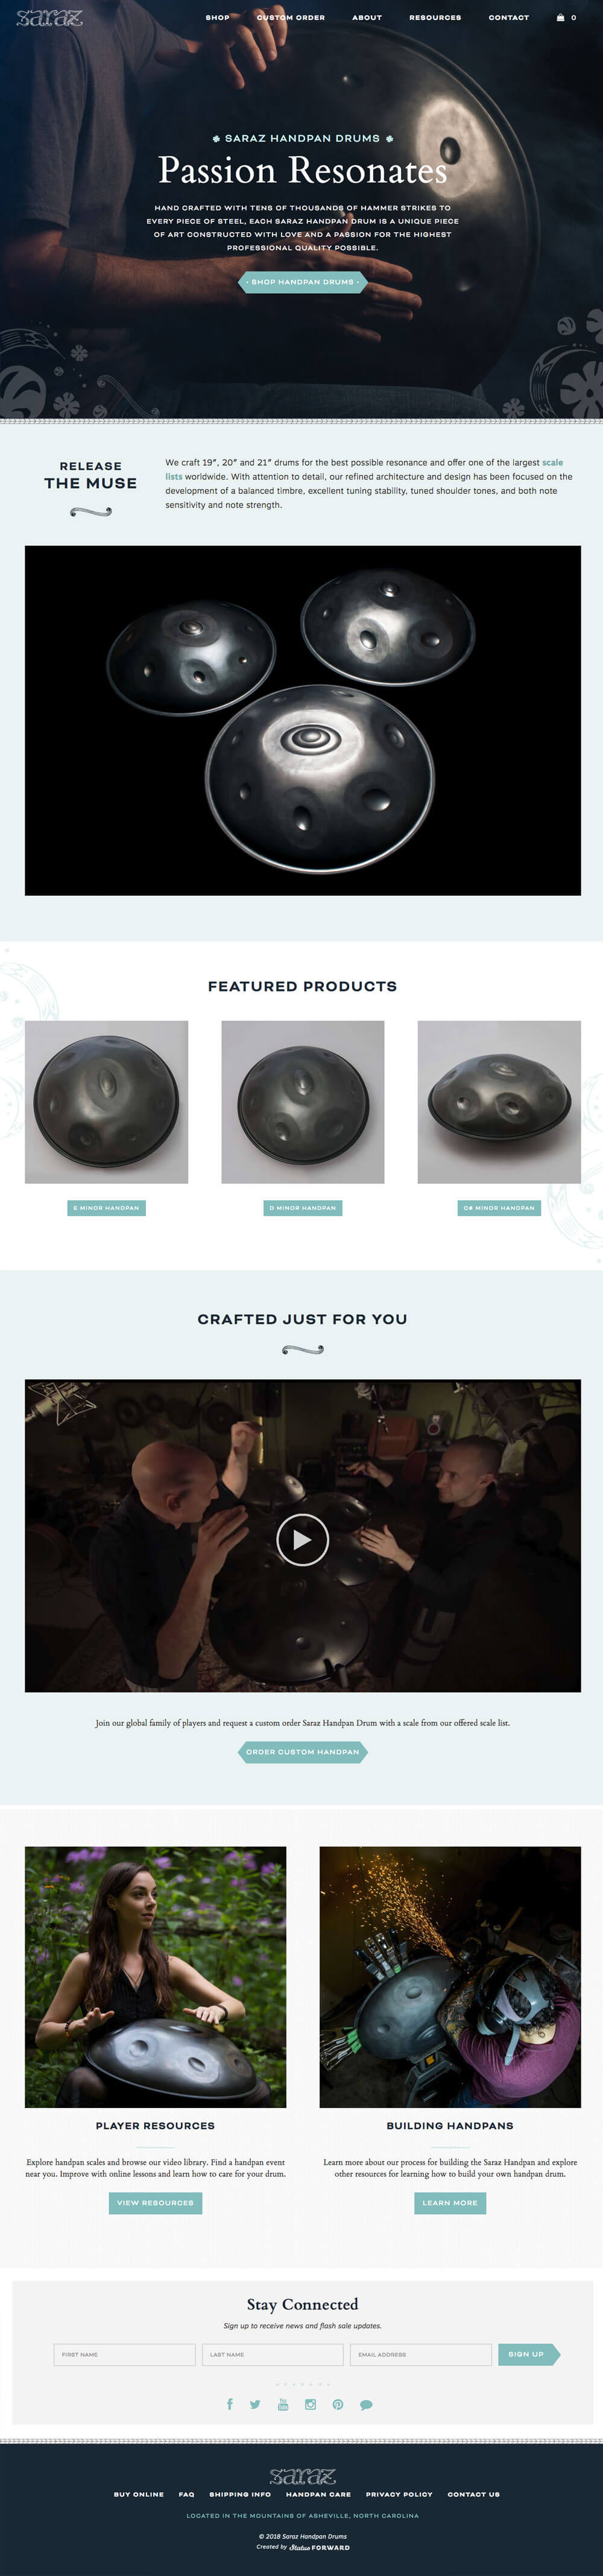 Saraz Handpan Home Page Design